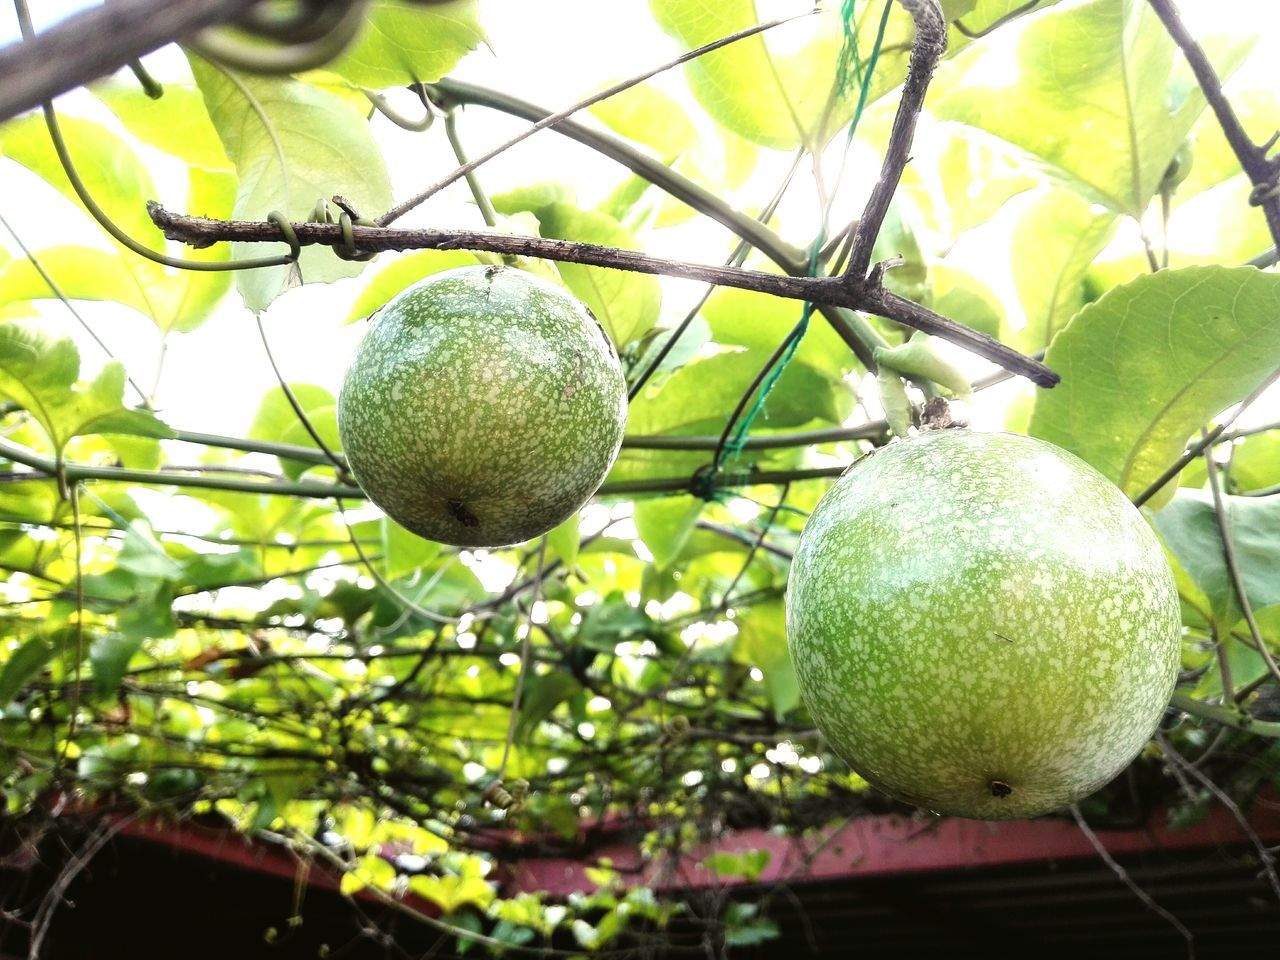 fruit, green color, tree, growth, food, healthy eating, food and drink, no people, citrus fruit, freshness, hanging, branch, leaf, day, close-up, nature, outdoors, low angle view, focus on foreground, beauty in nature